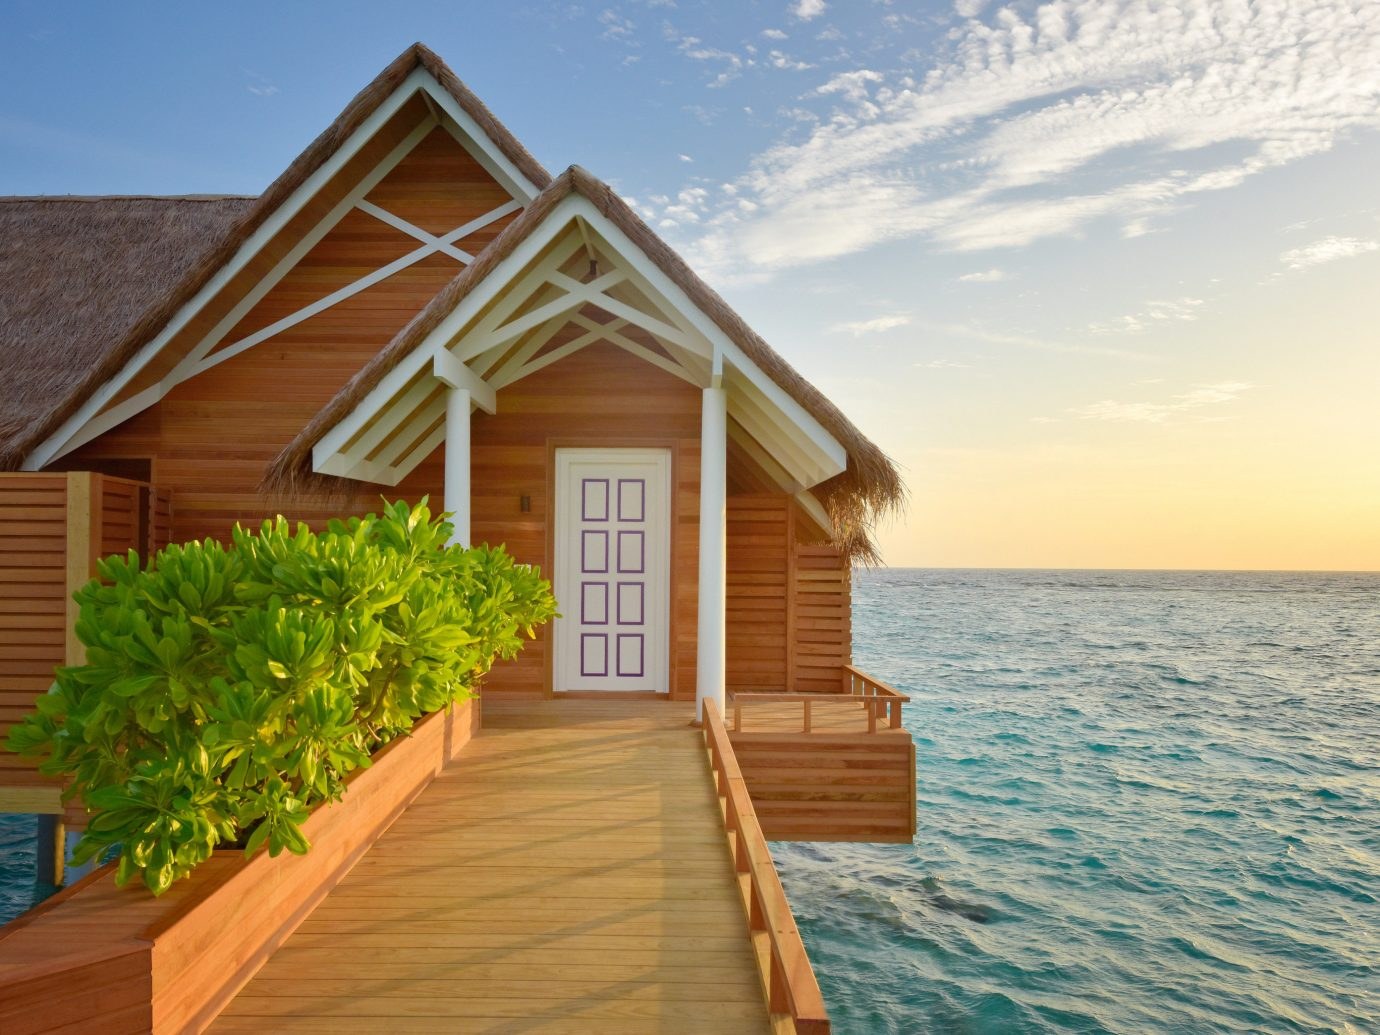 Hotels sky outdoor water house property home vacation wooden estate cottage wood siding Villa